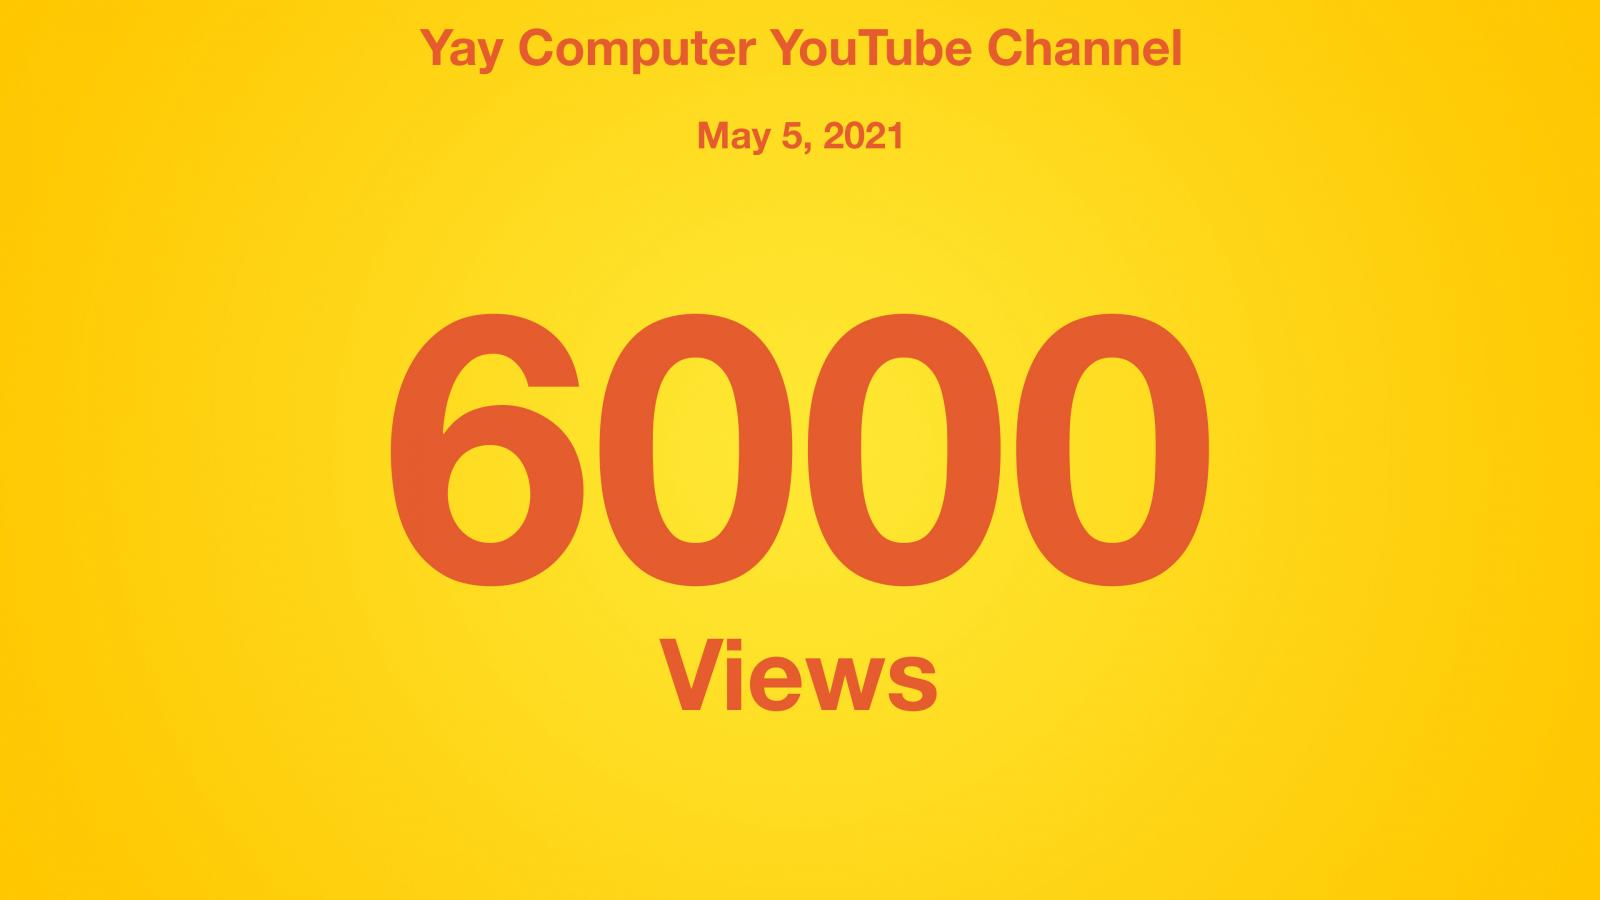 Yay Computer YouTube Channel, May 5 2021, 6000 Views